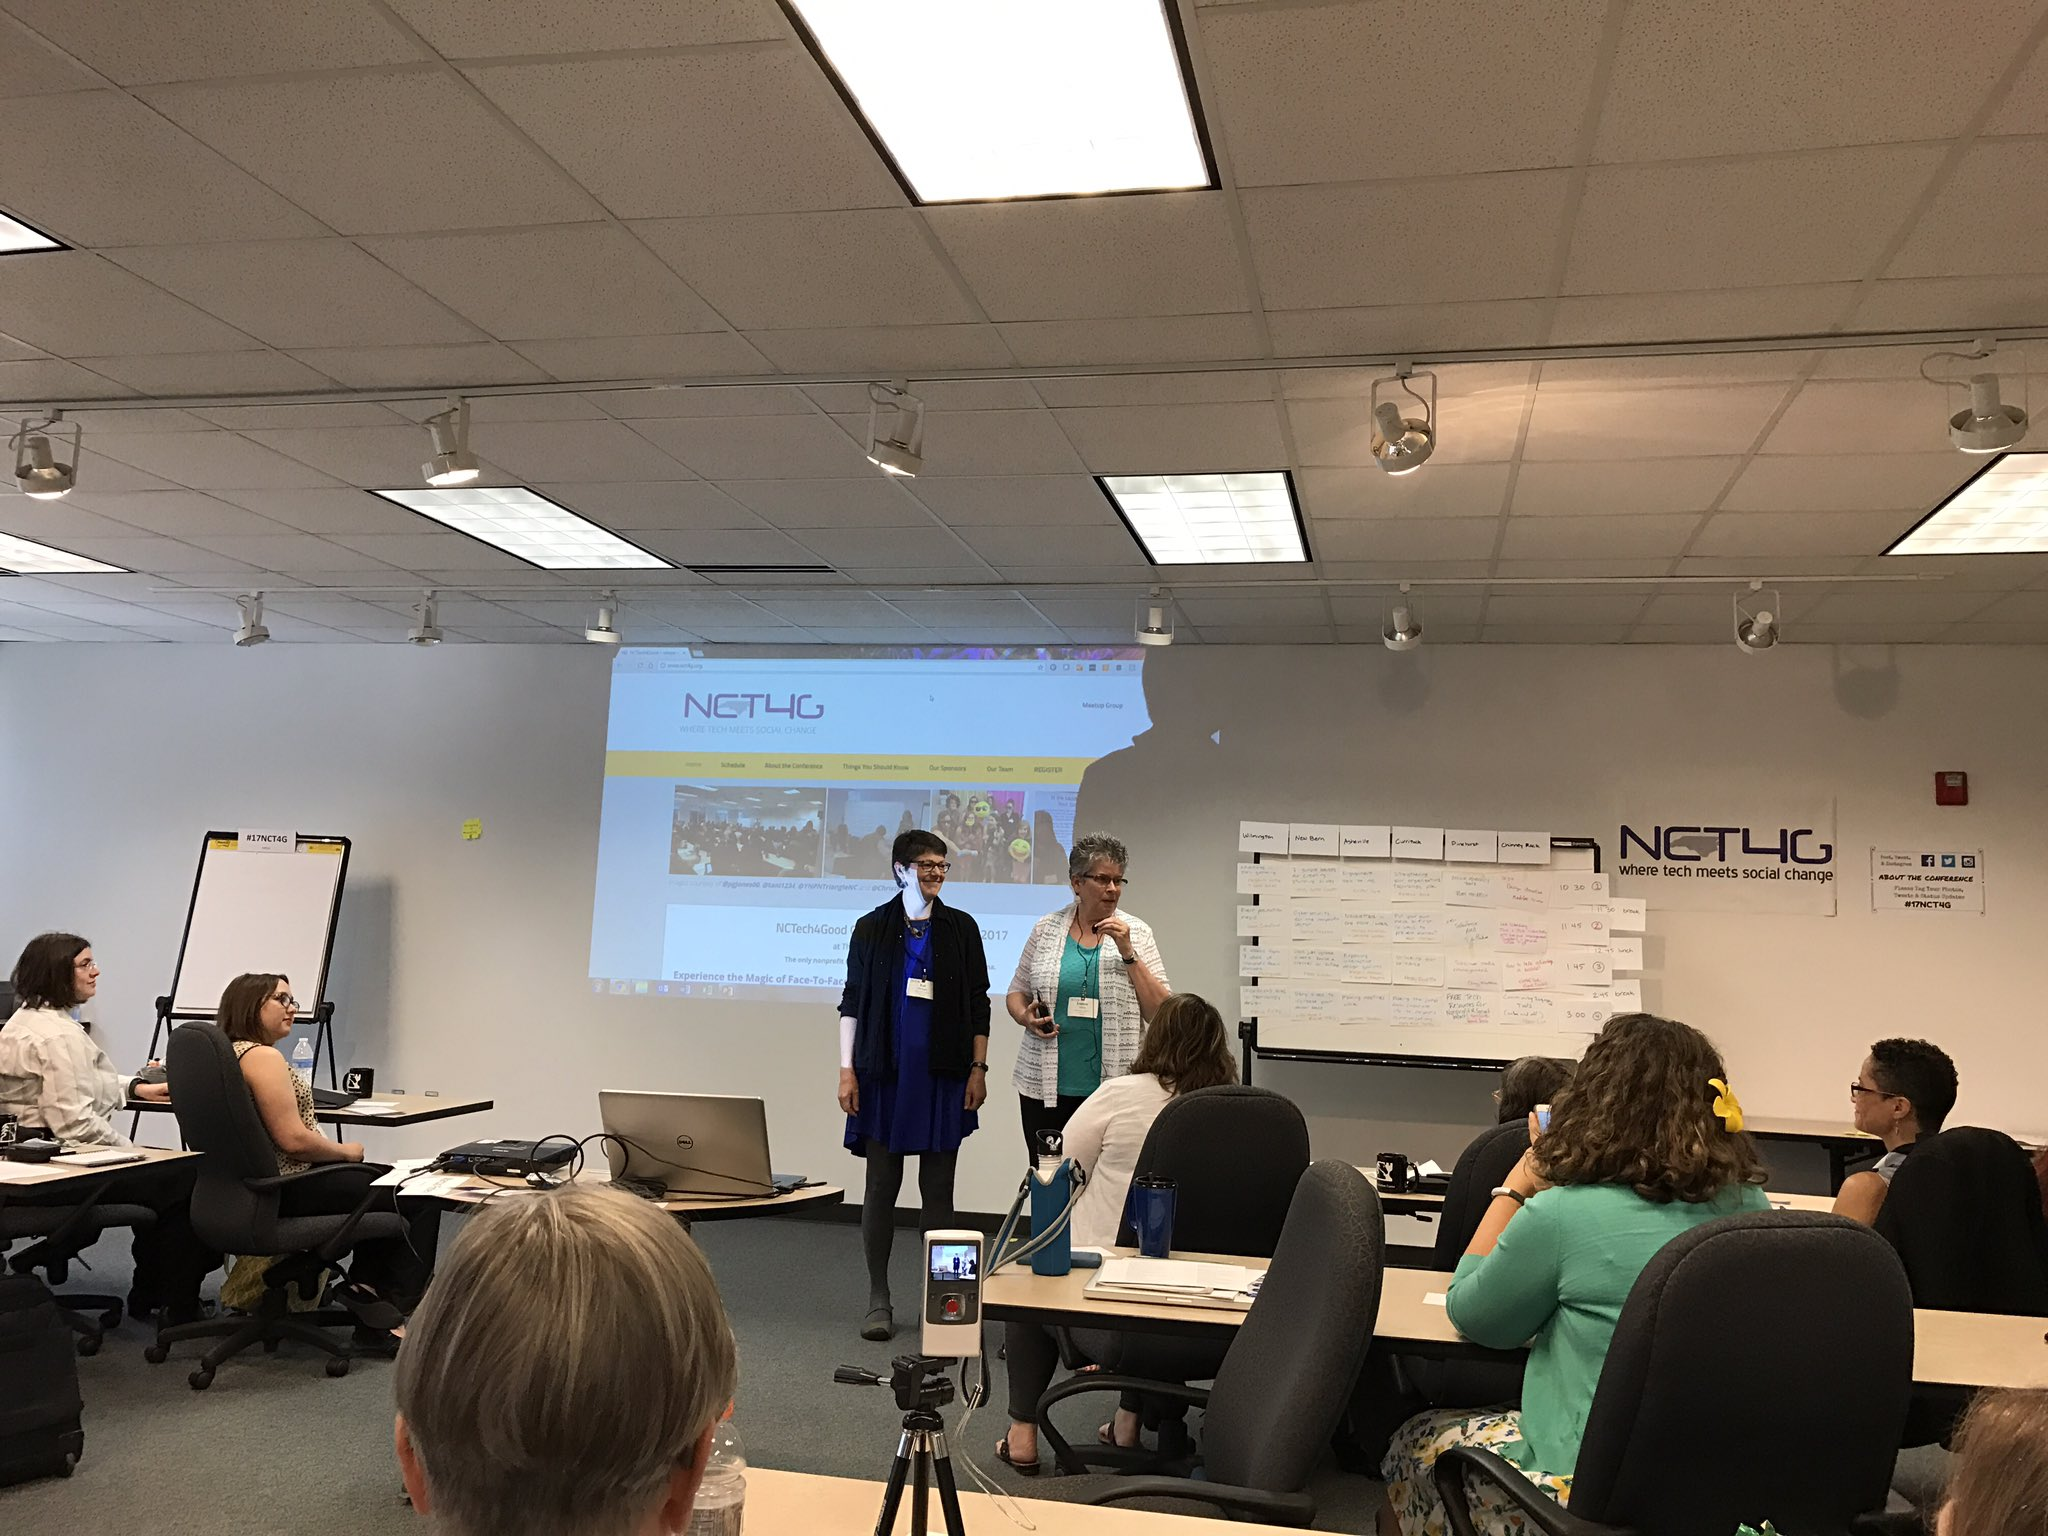 Ignite sessions are beginning! #17NCT4G https://t.co/njSKETq4zL